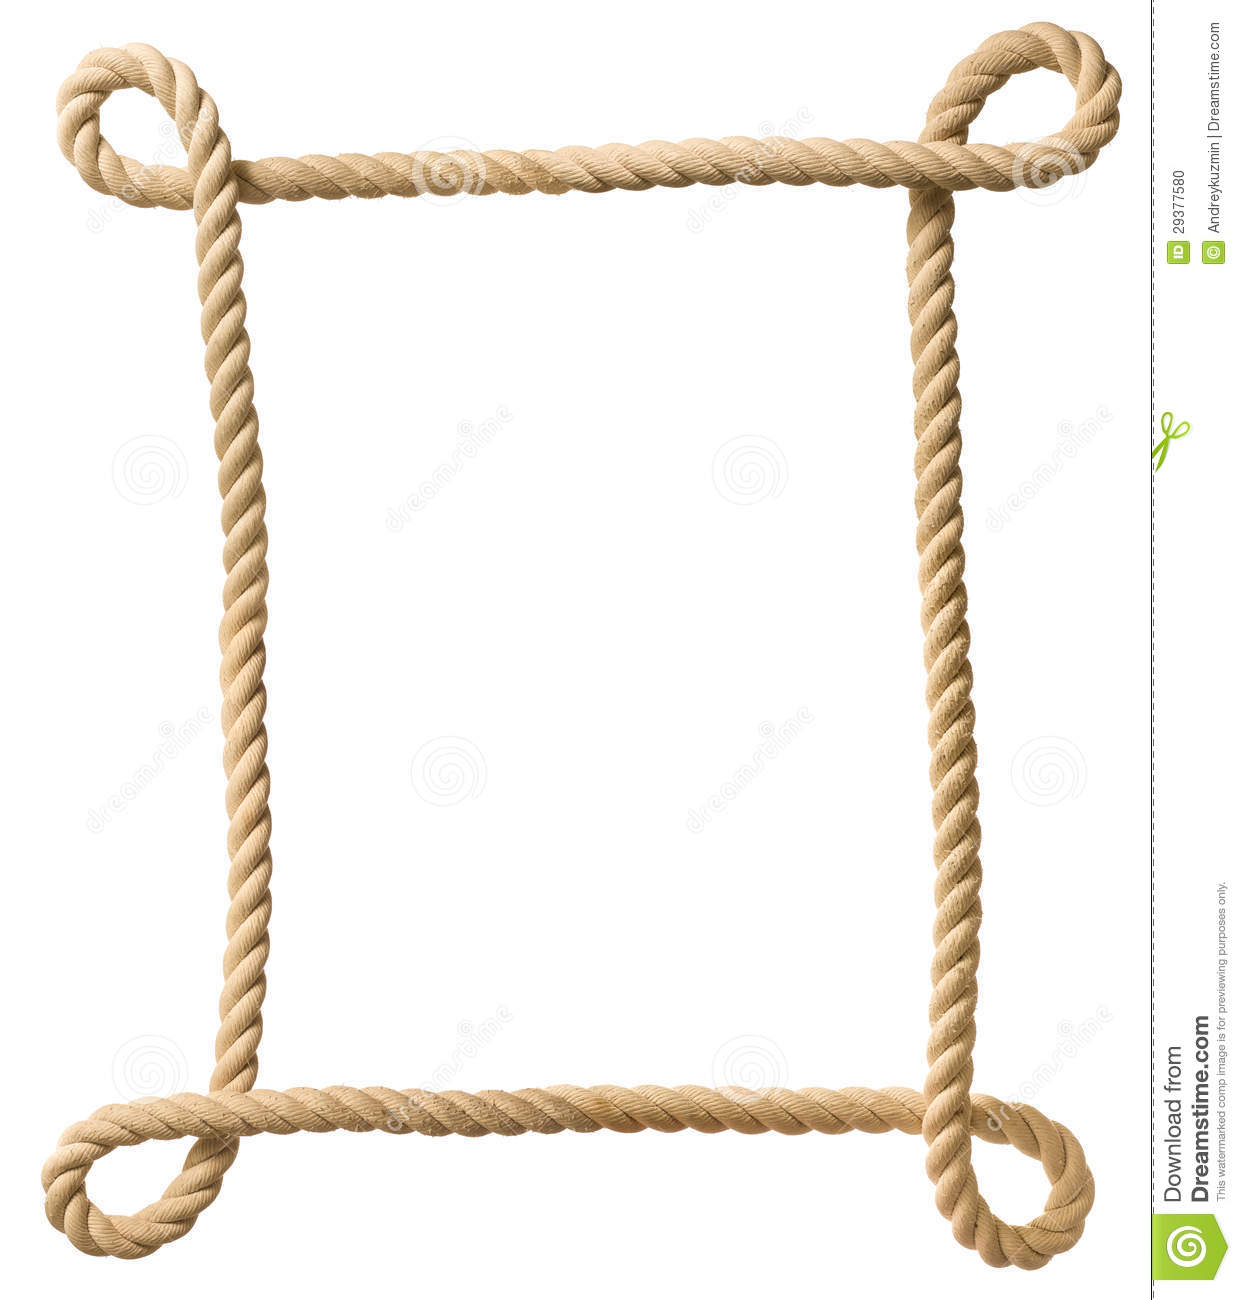 Rope Frame Stock Photo Image Of Rope Design Border: rope photo frame